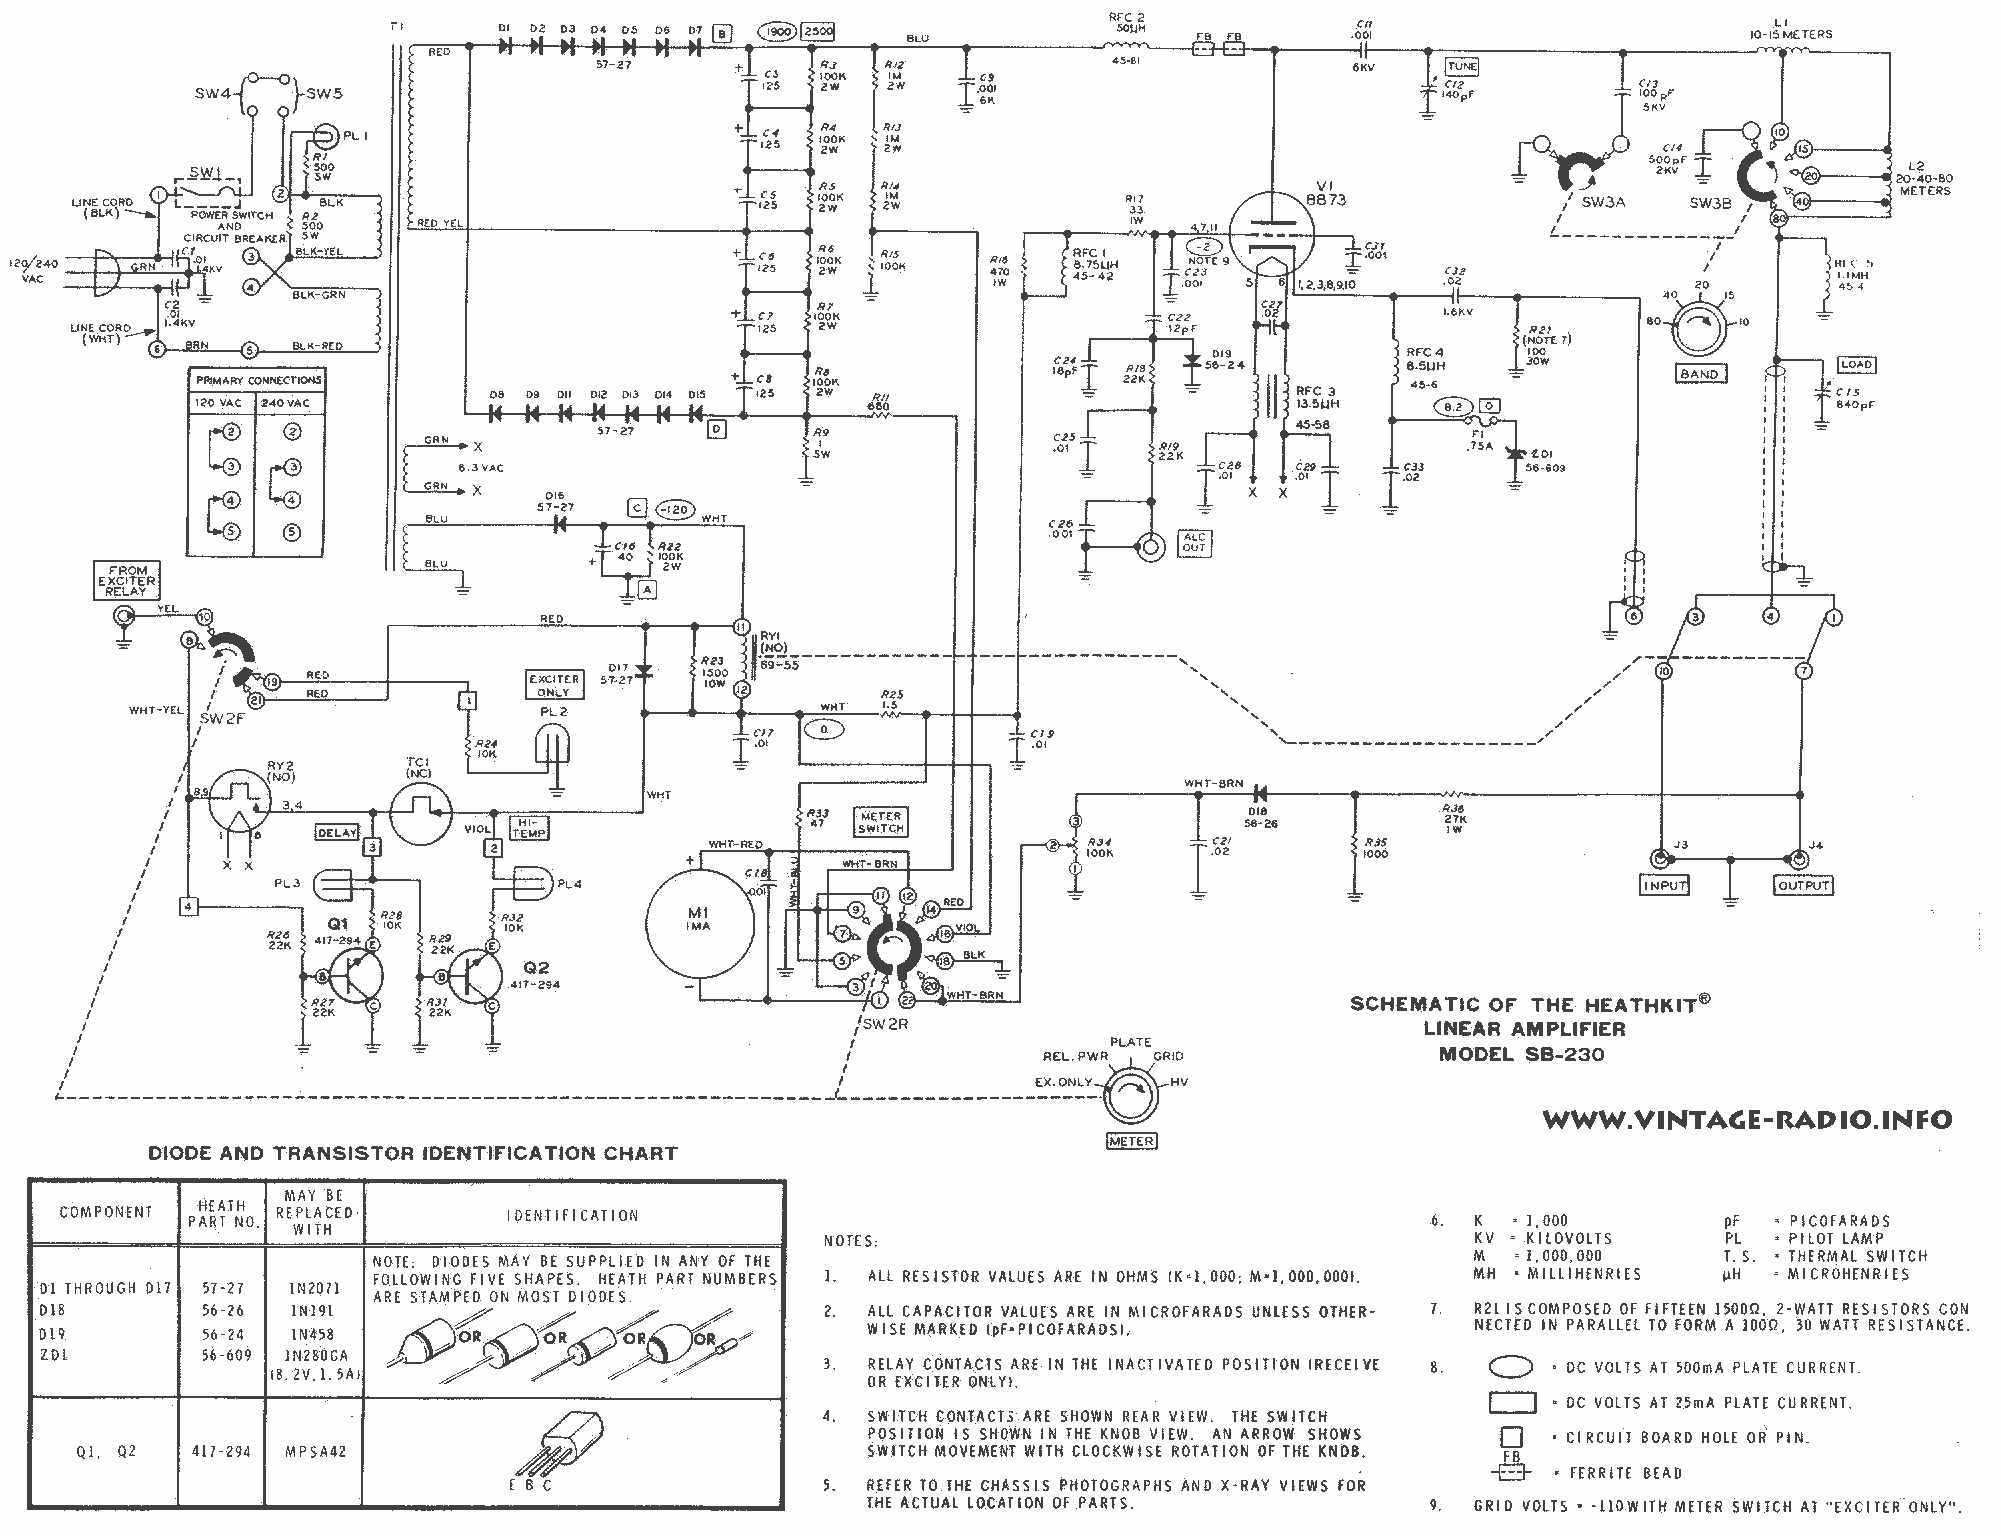 [DIAGRAM] Schneider Acb Control Wiring Diagram FULL